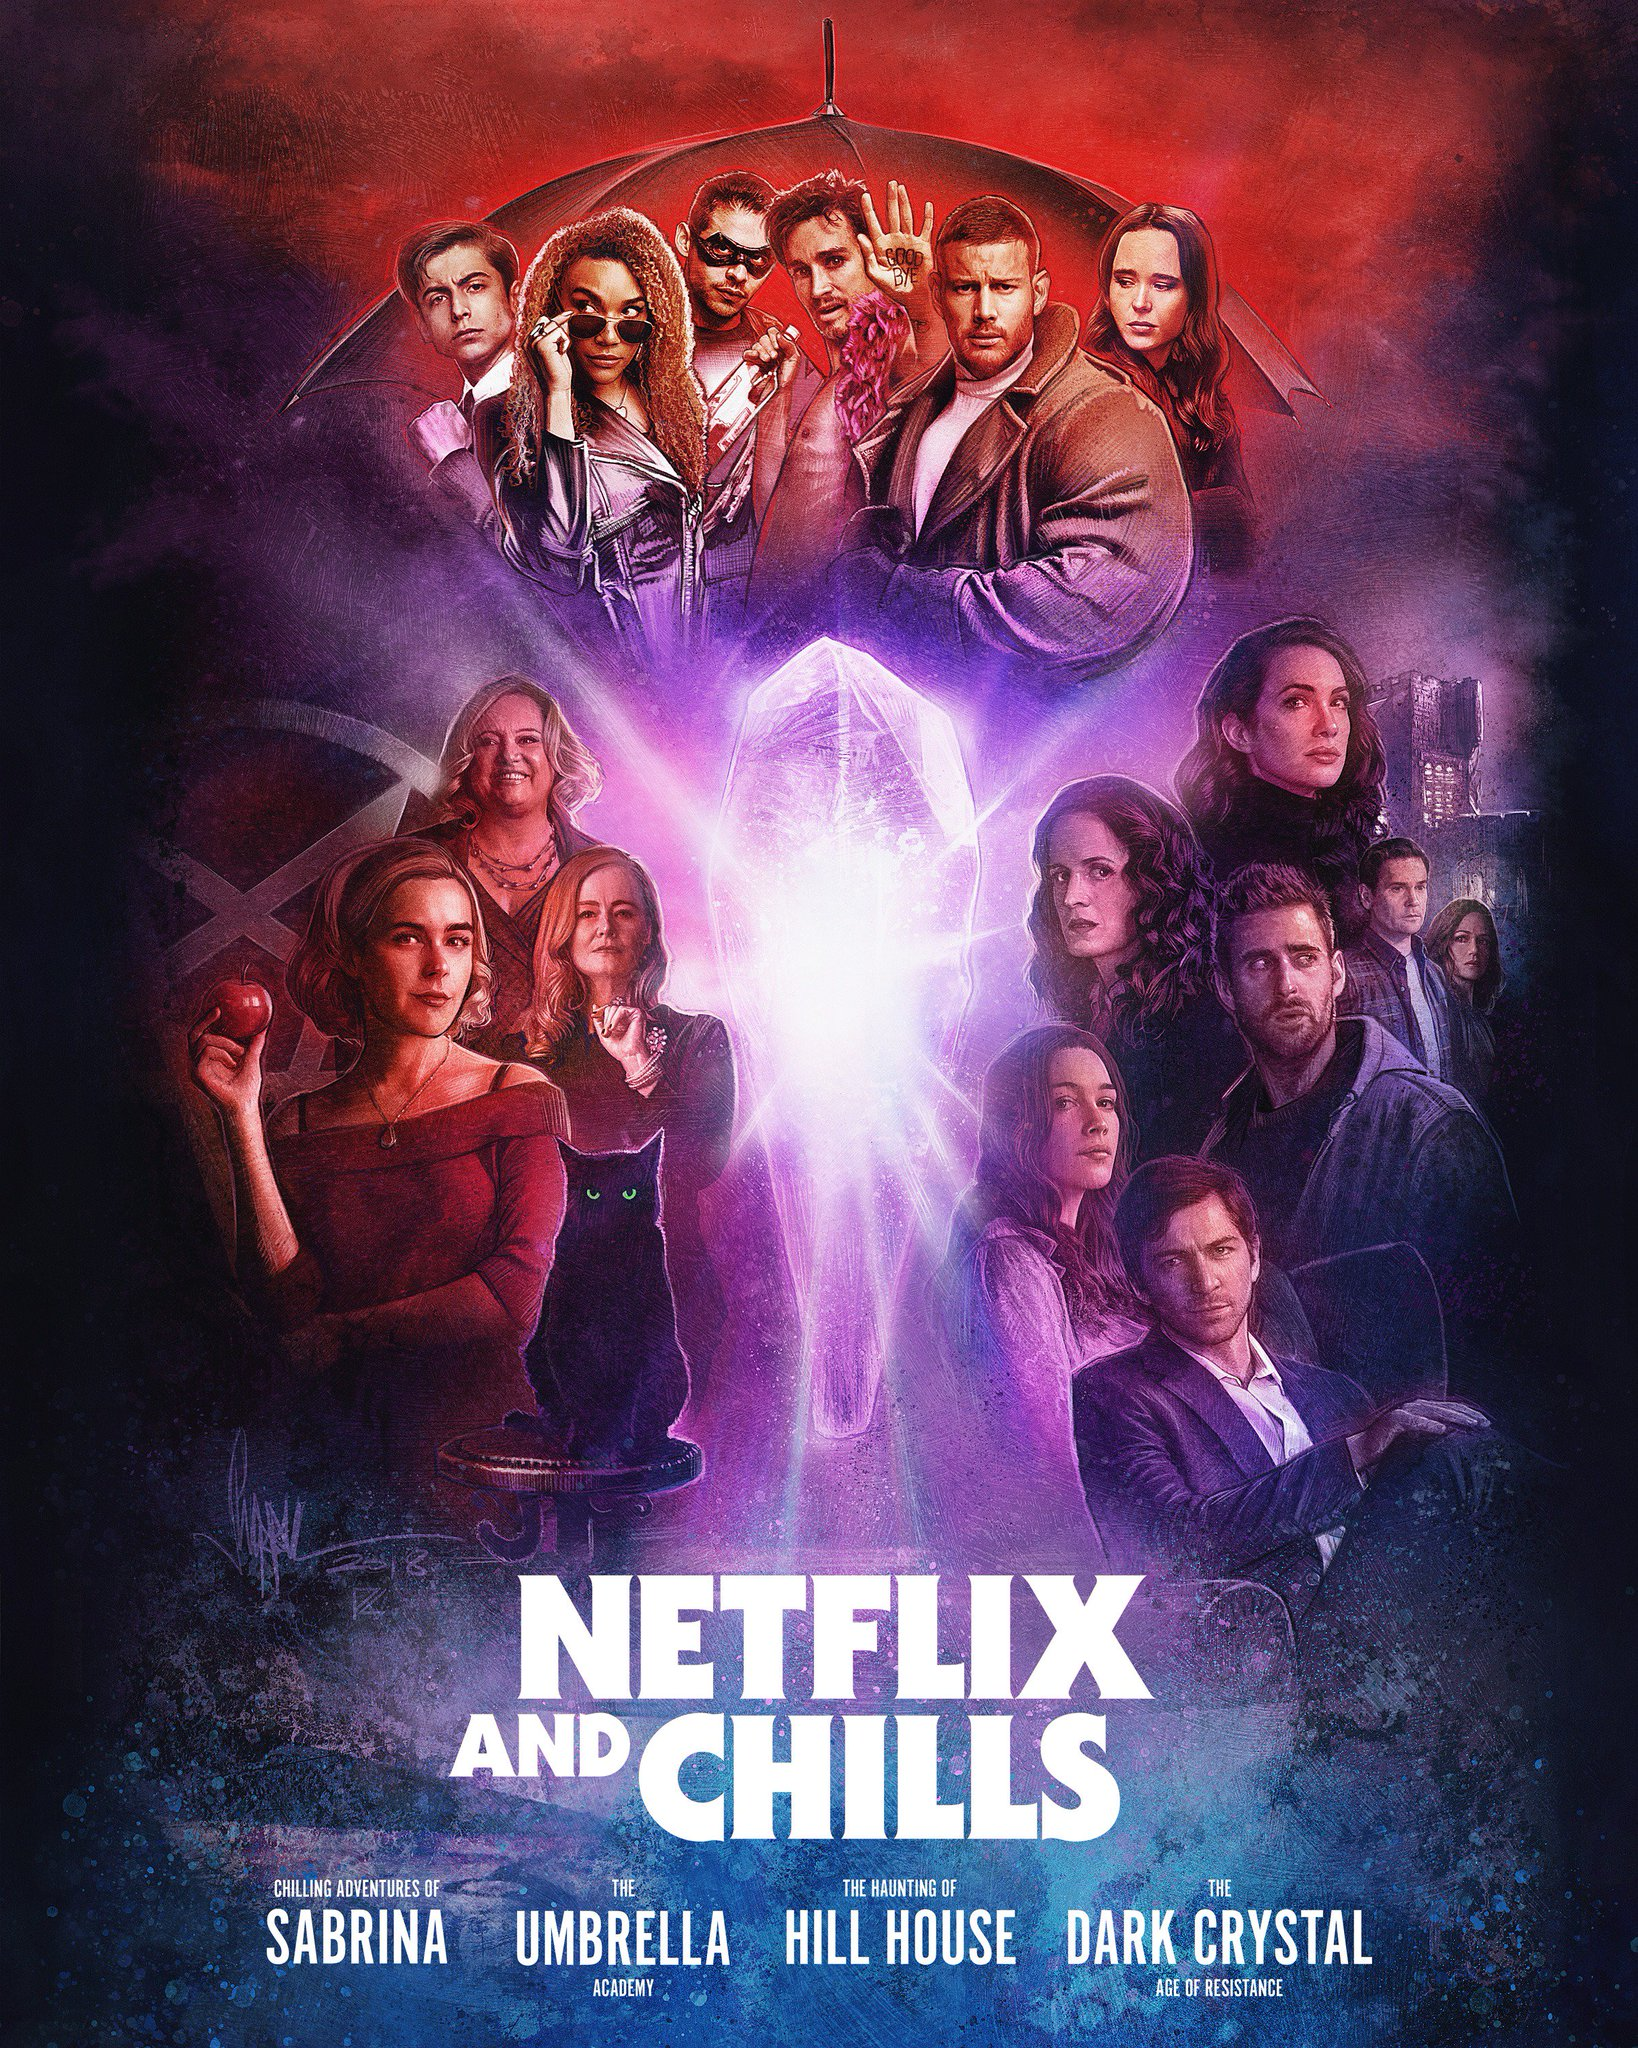 Nx On Twitter Alright It S Time For Netflixandchills Better Turn On All The Lights Because This Is Gonna Be The Spoopiest Live Tweet Ever Https T Co Wjcfssgzvc